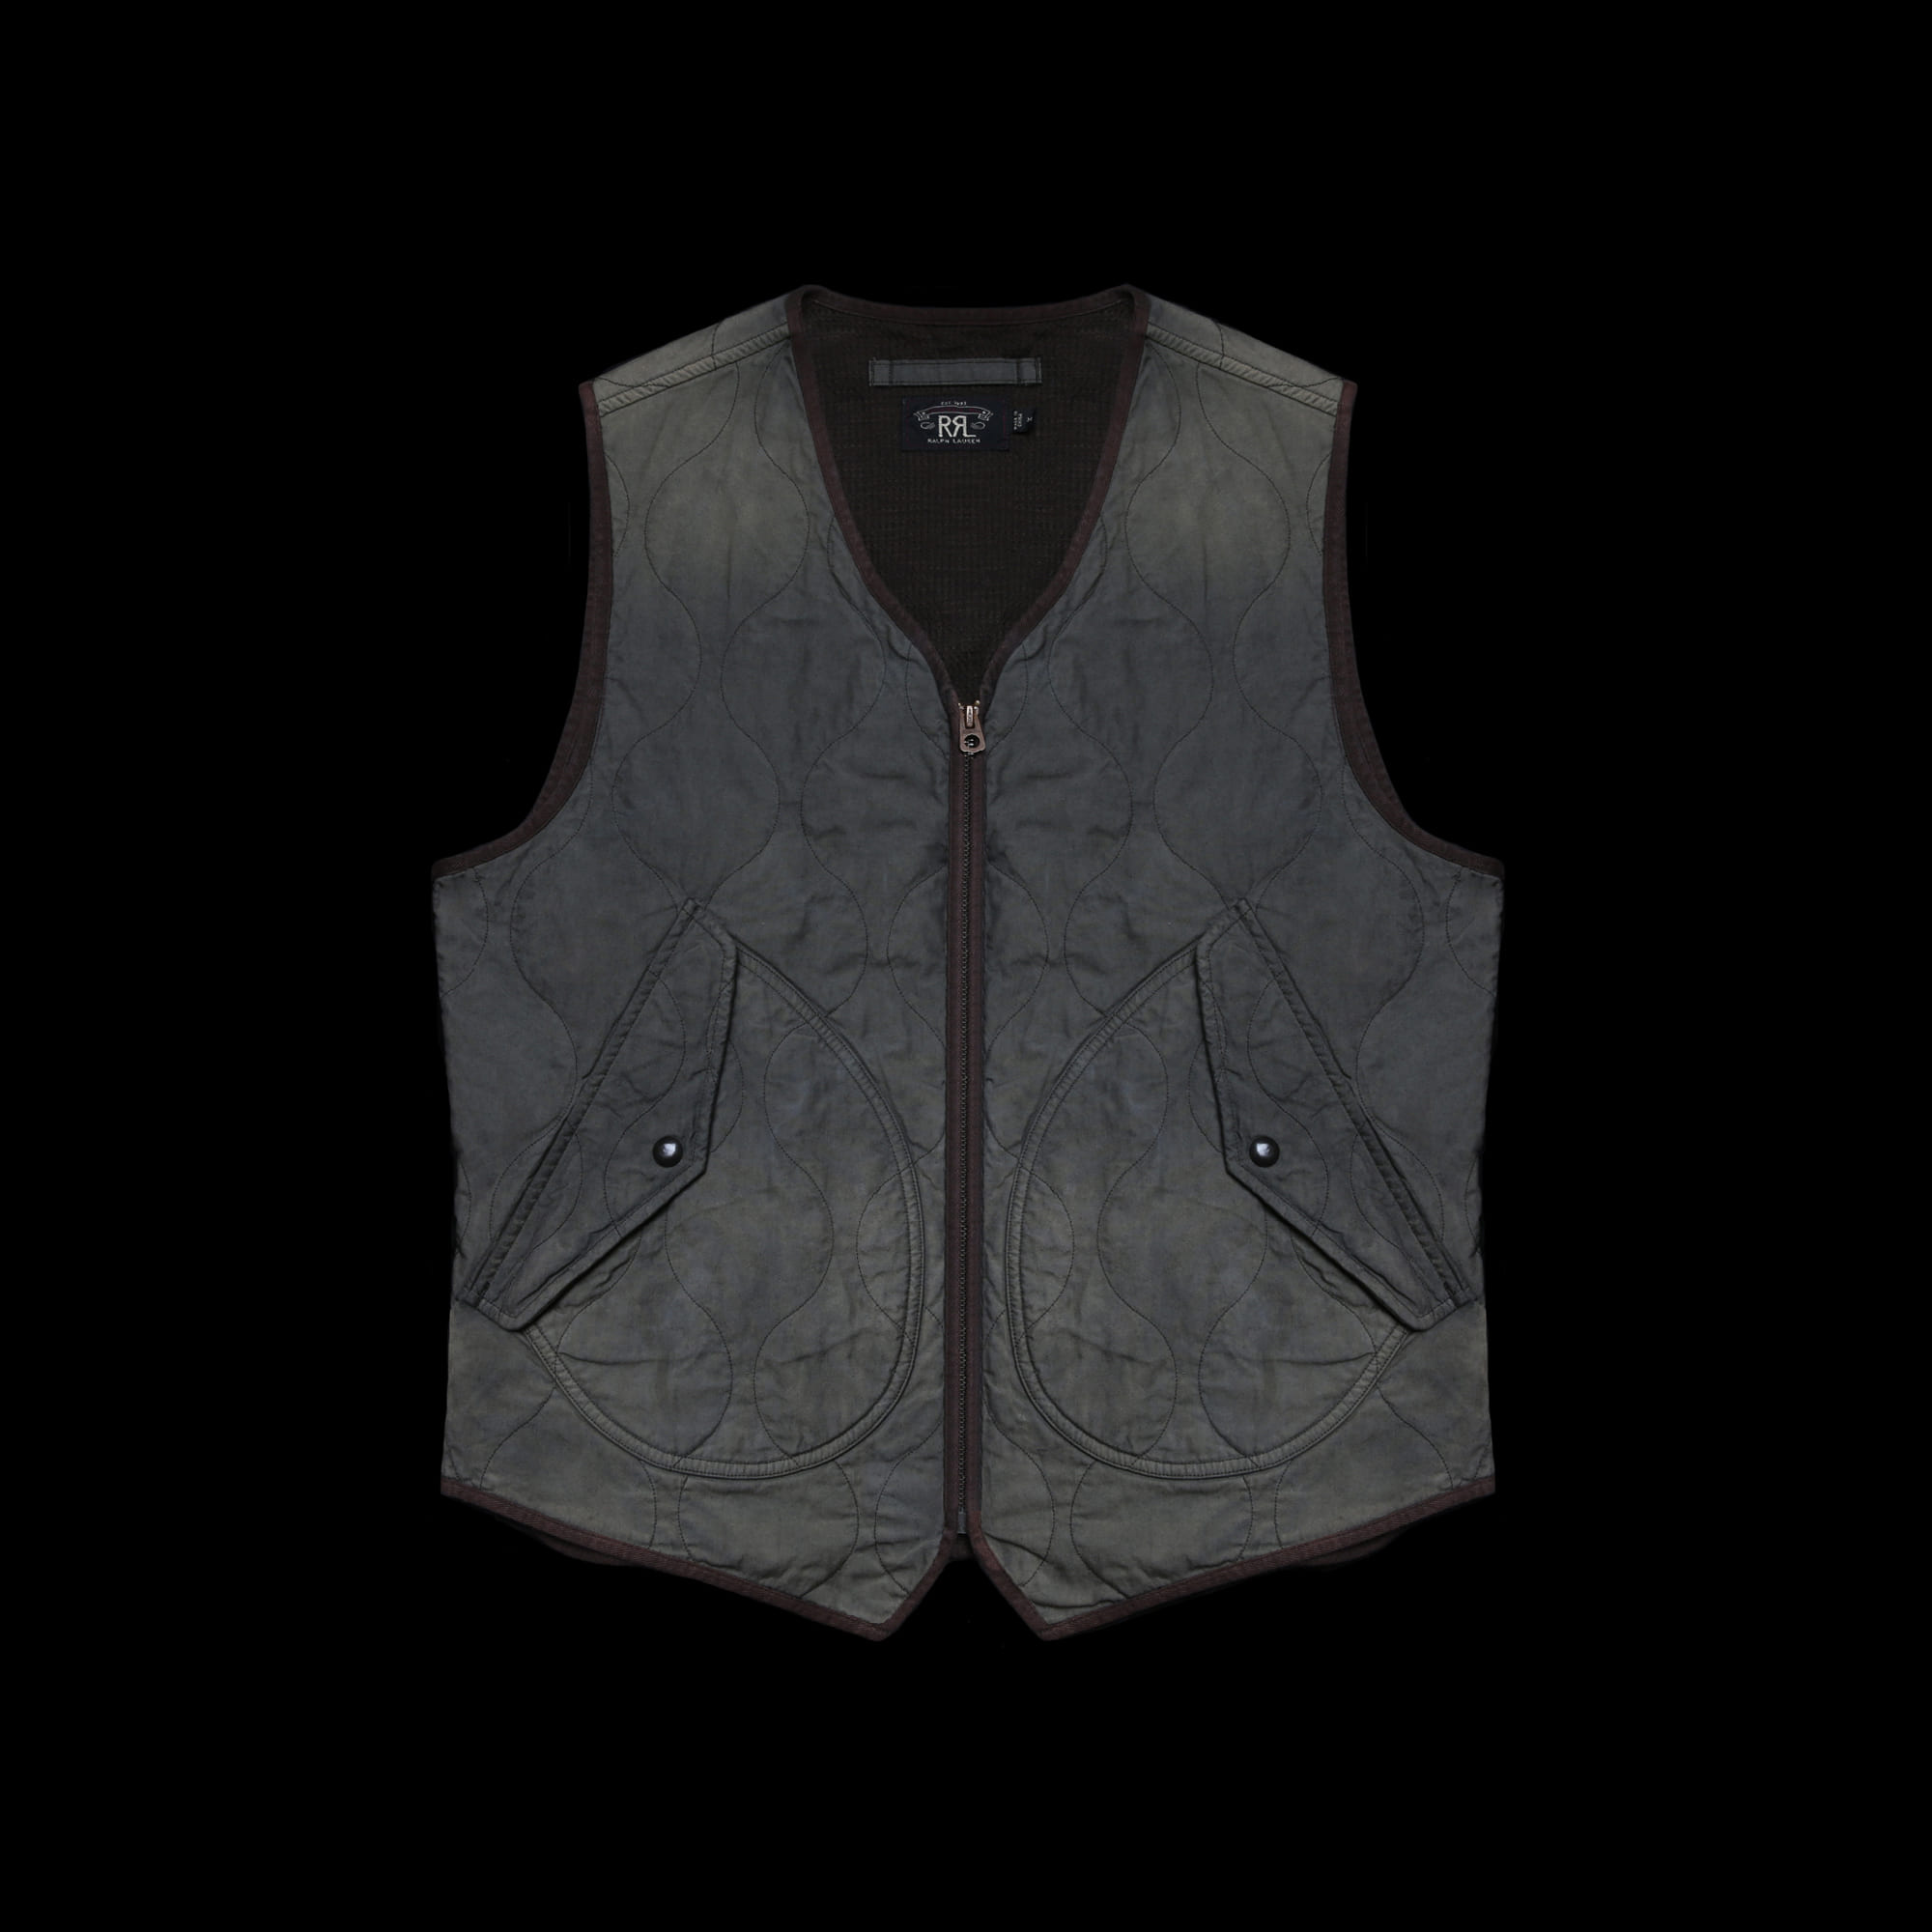 RRLJENKINS QUILTED OXFORDVEST